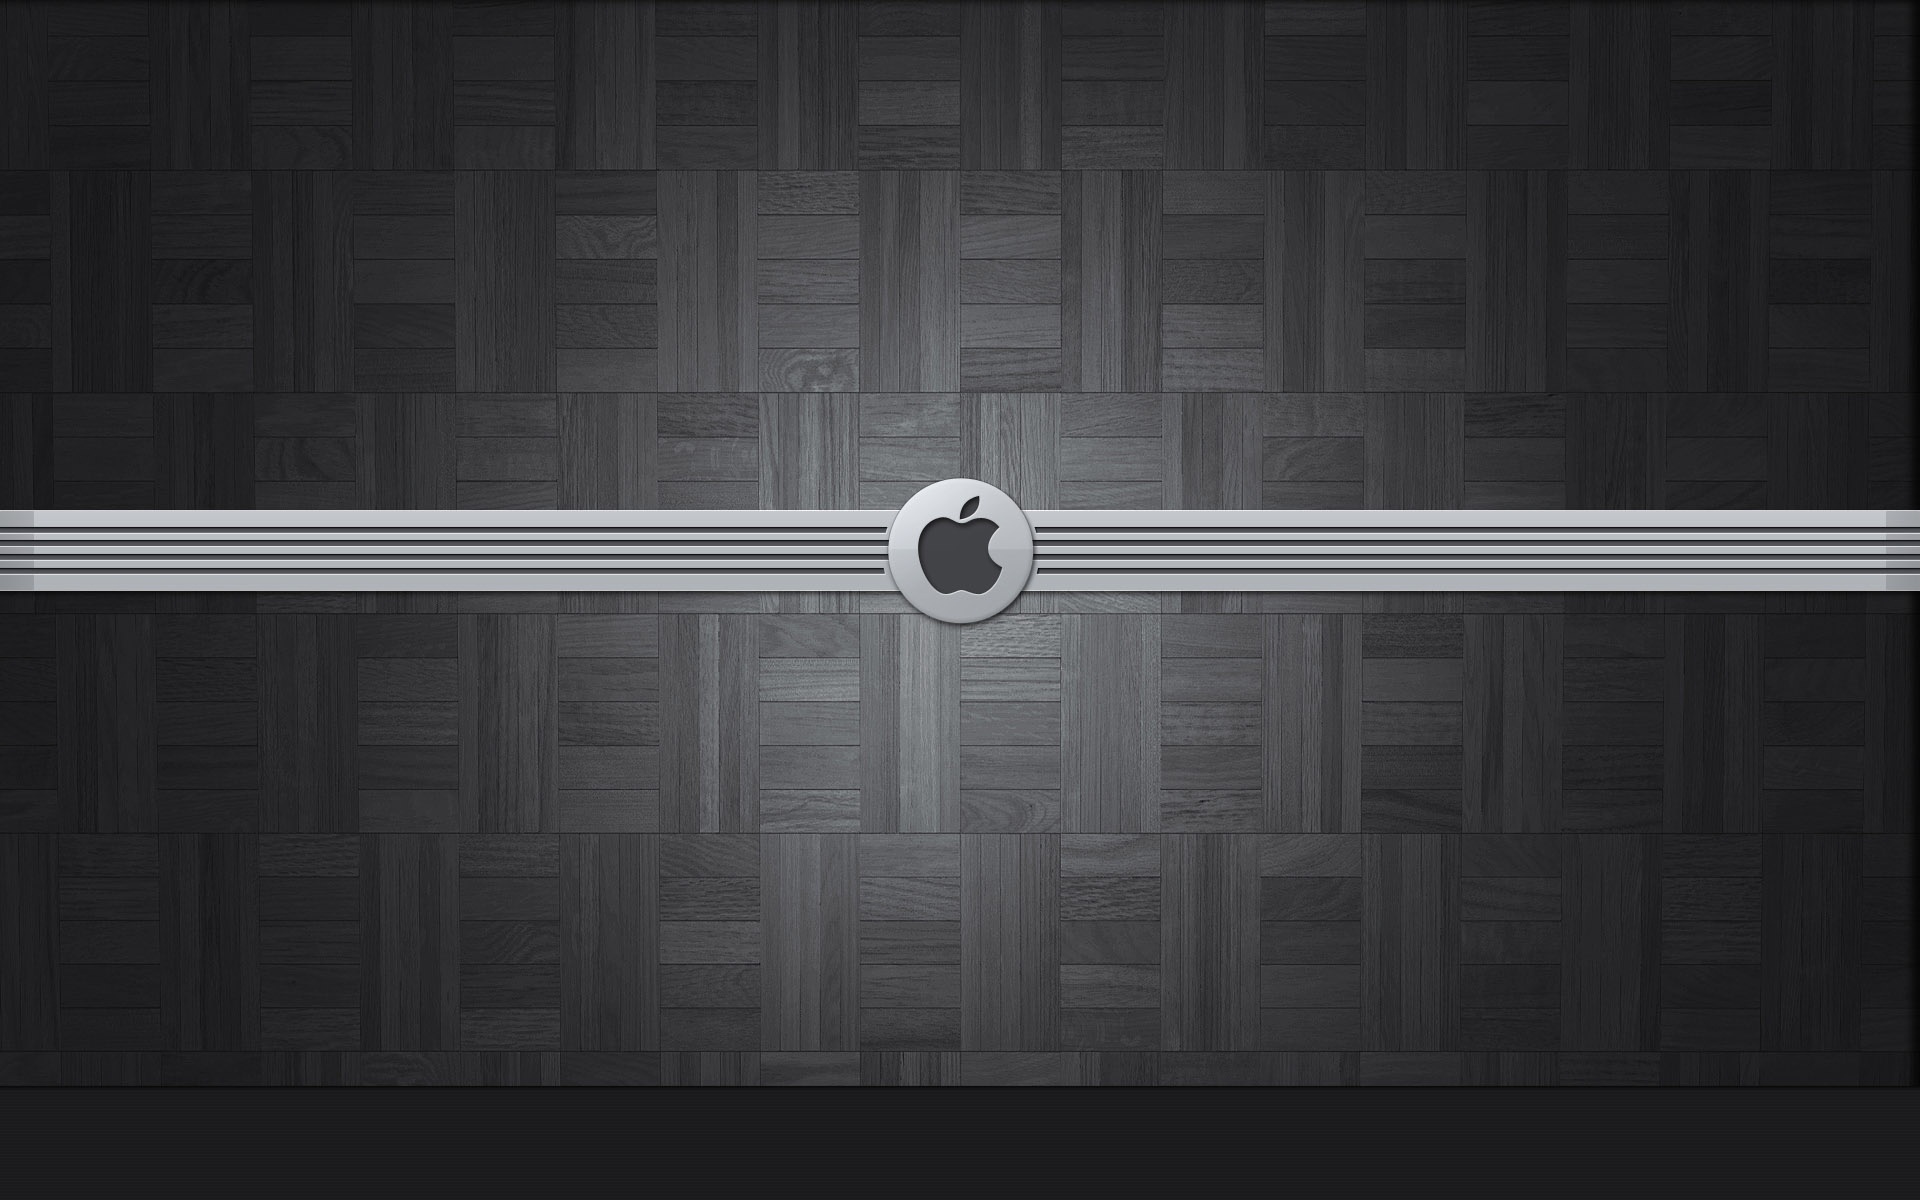 HD Apple wallpaper 20828